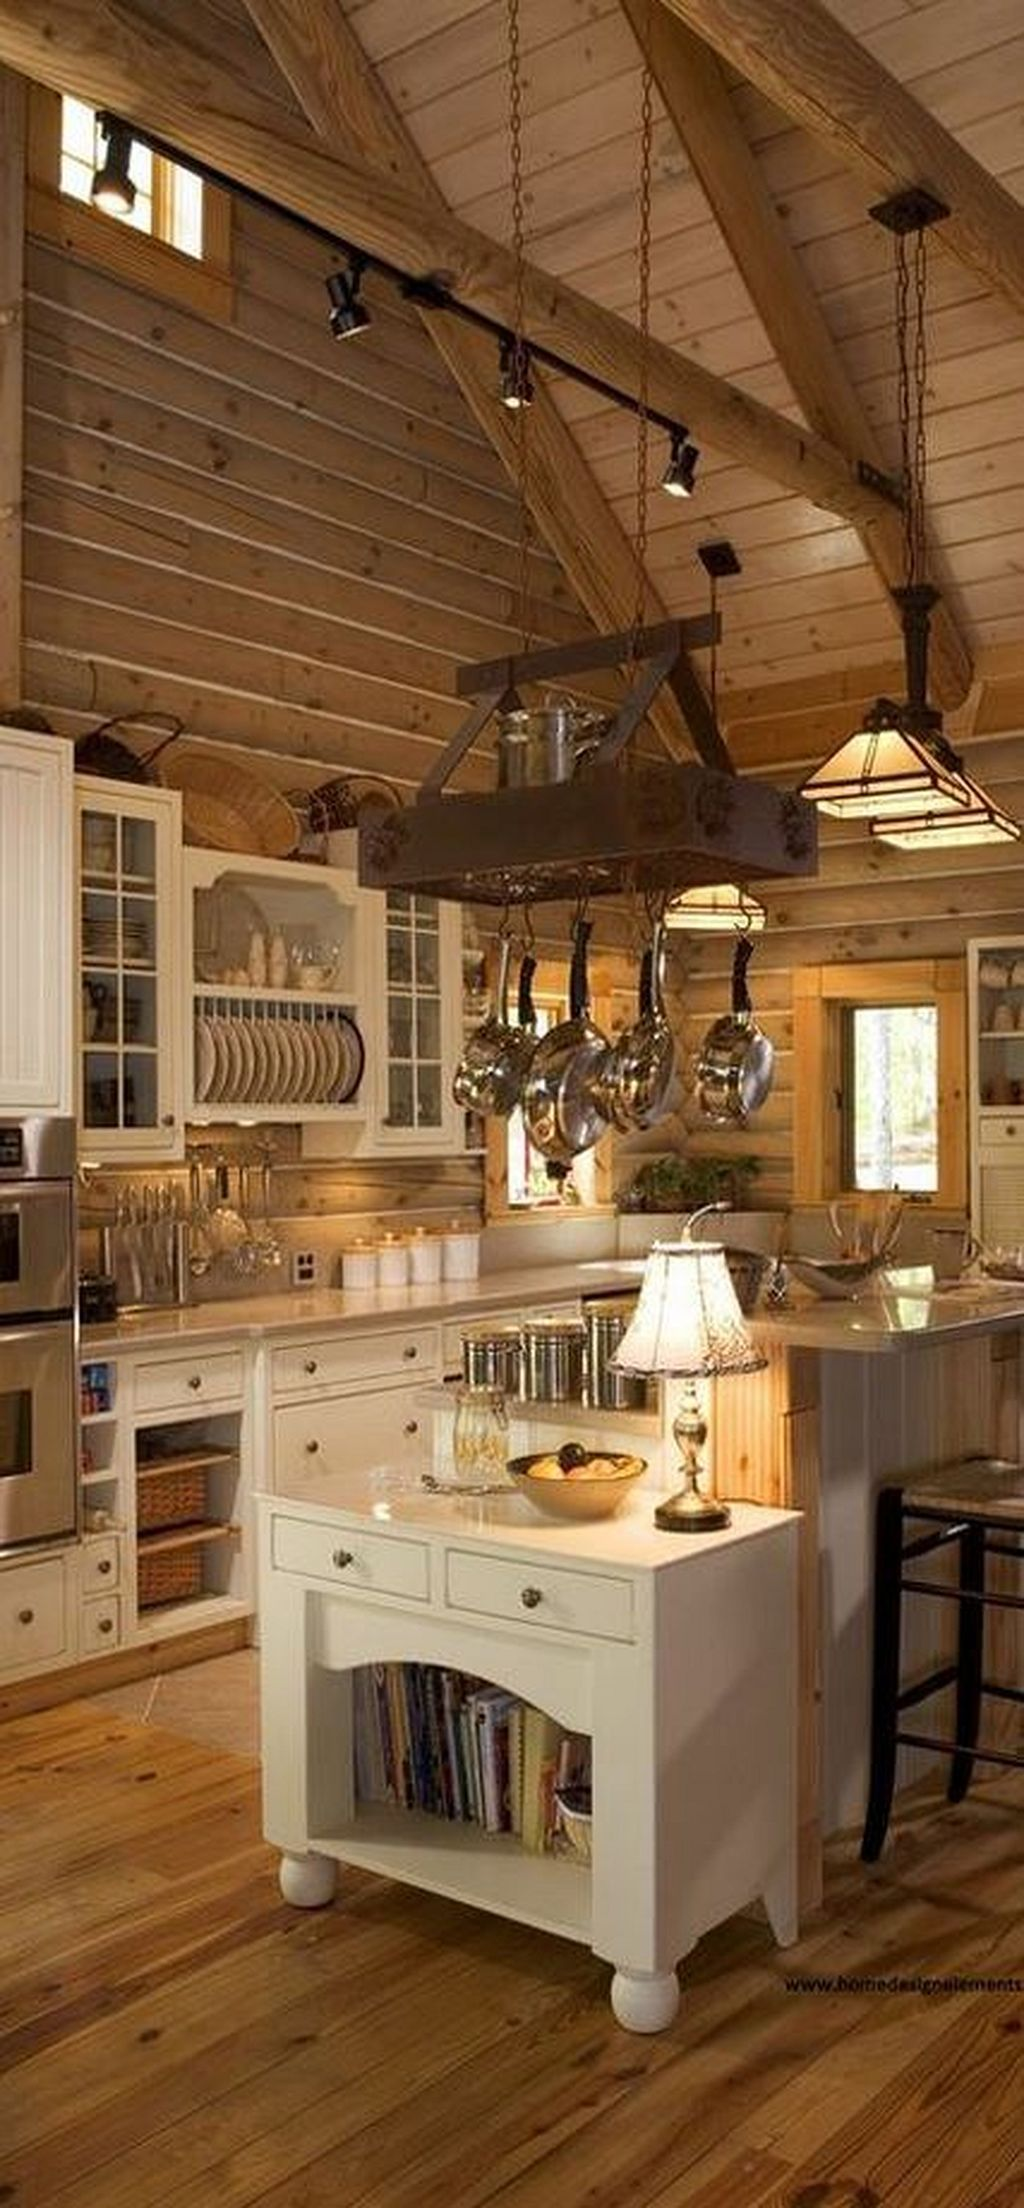 Wonderful 72 Log Cabin Kitchen Ideas